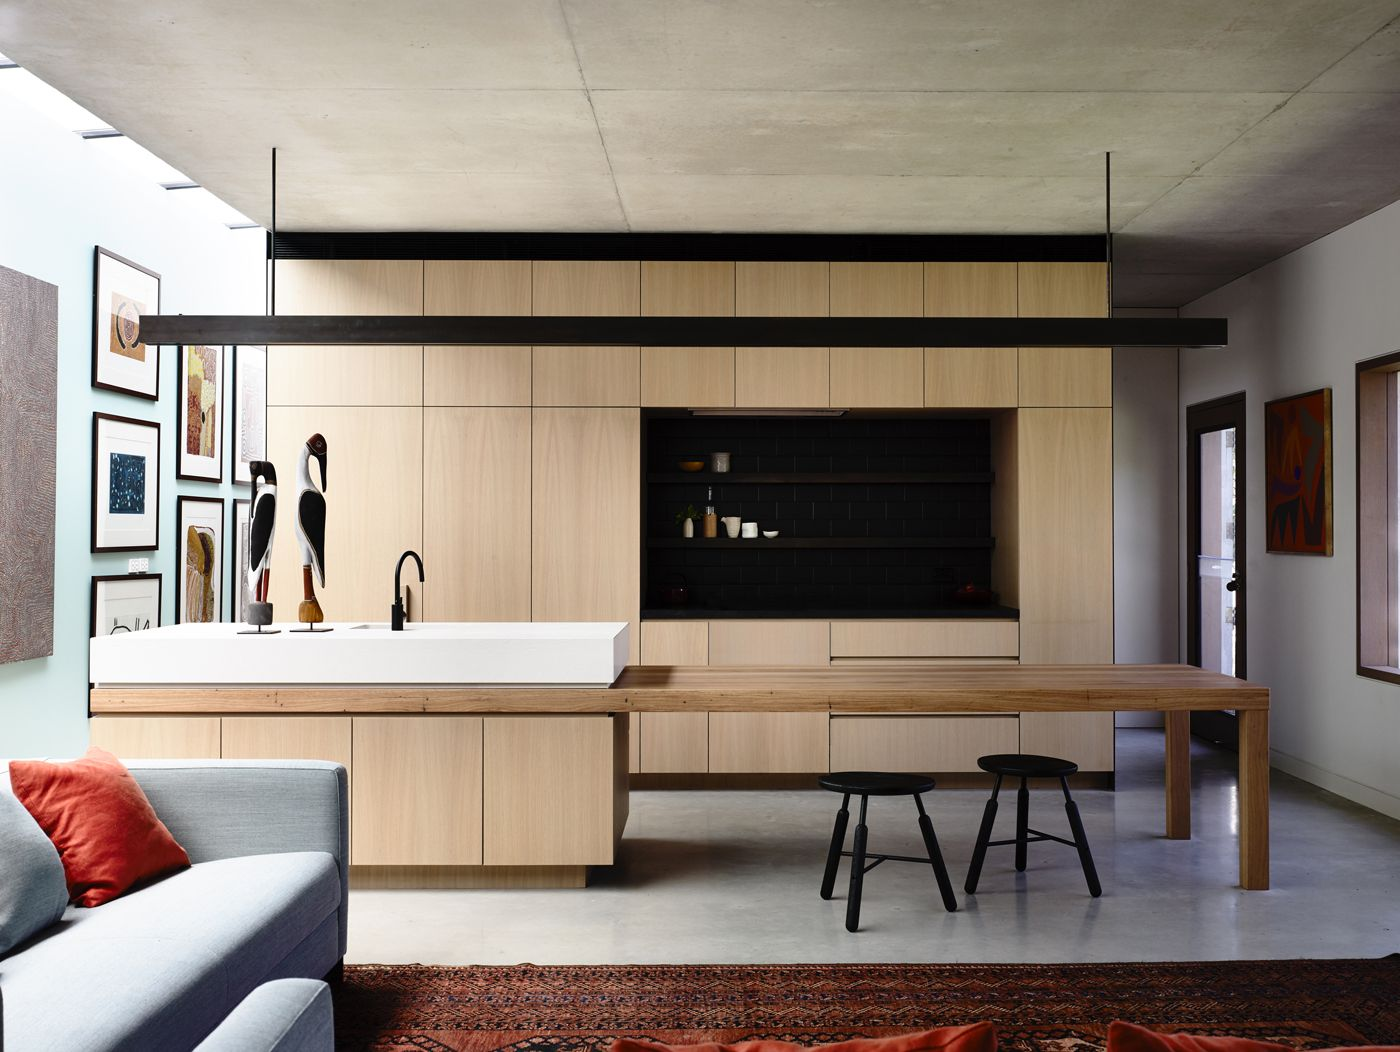 rob kennon architects sarah darling house kitchen timber